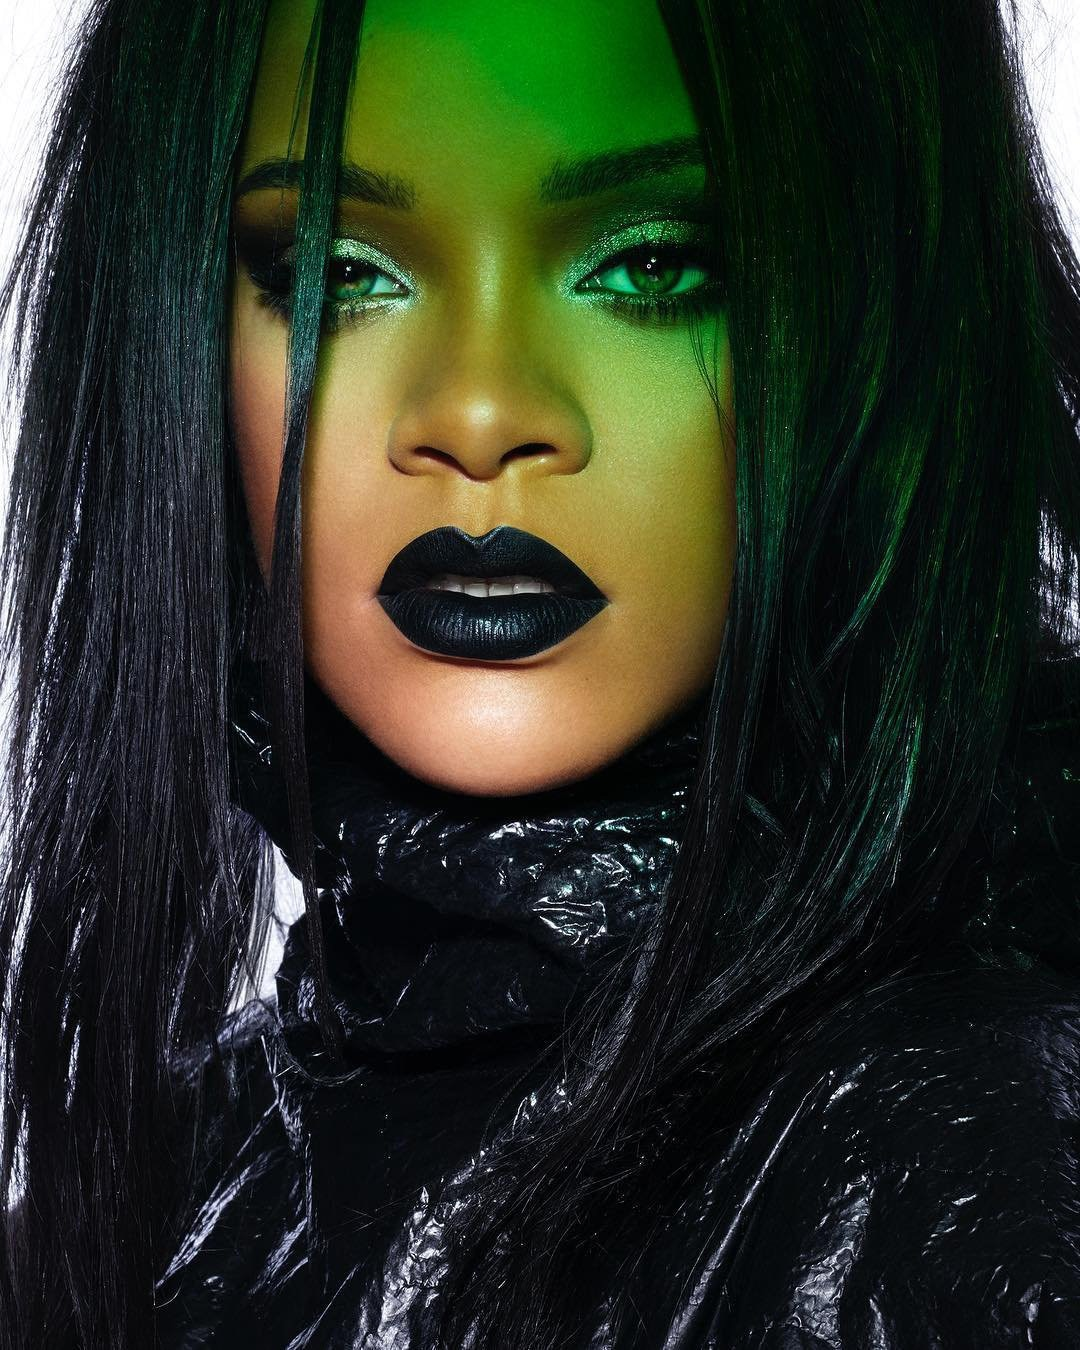 Rihanna turns goth now vid naked (66 photos), Instagram Celebrity images